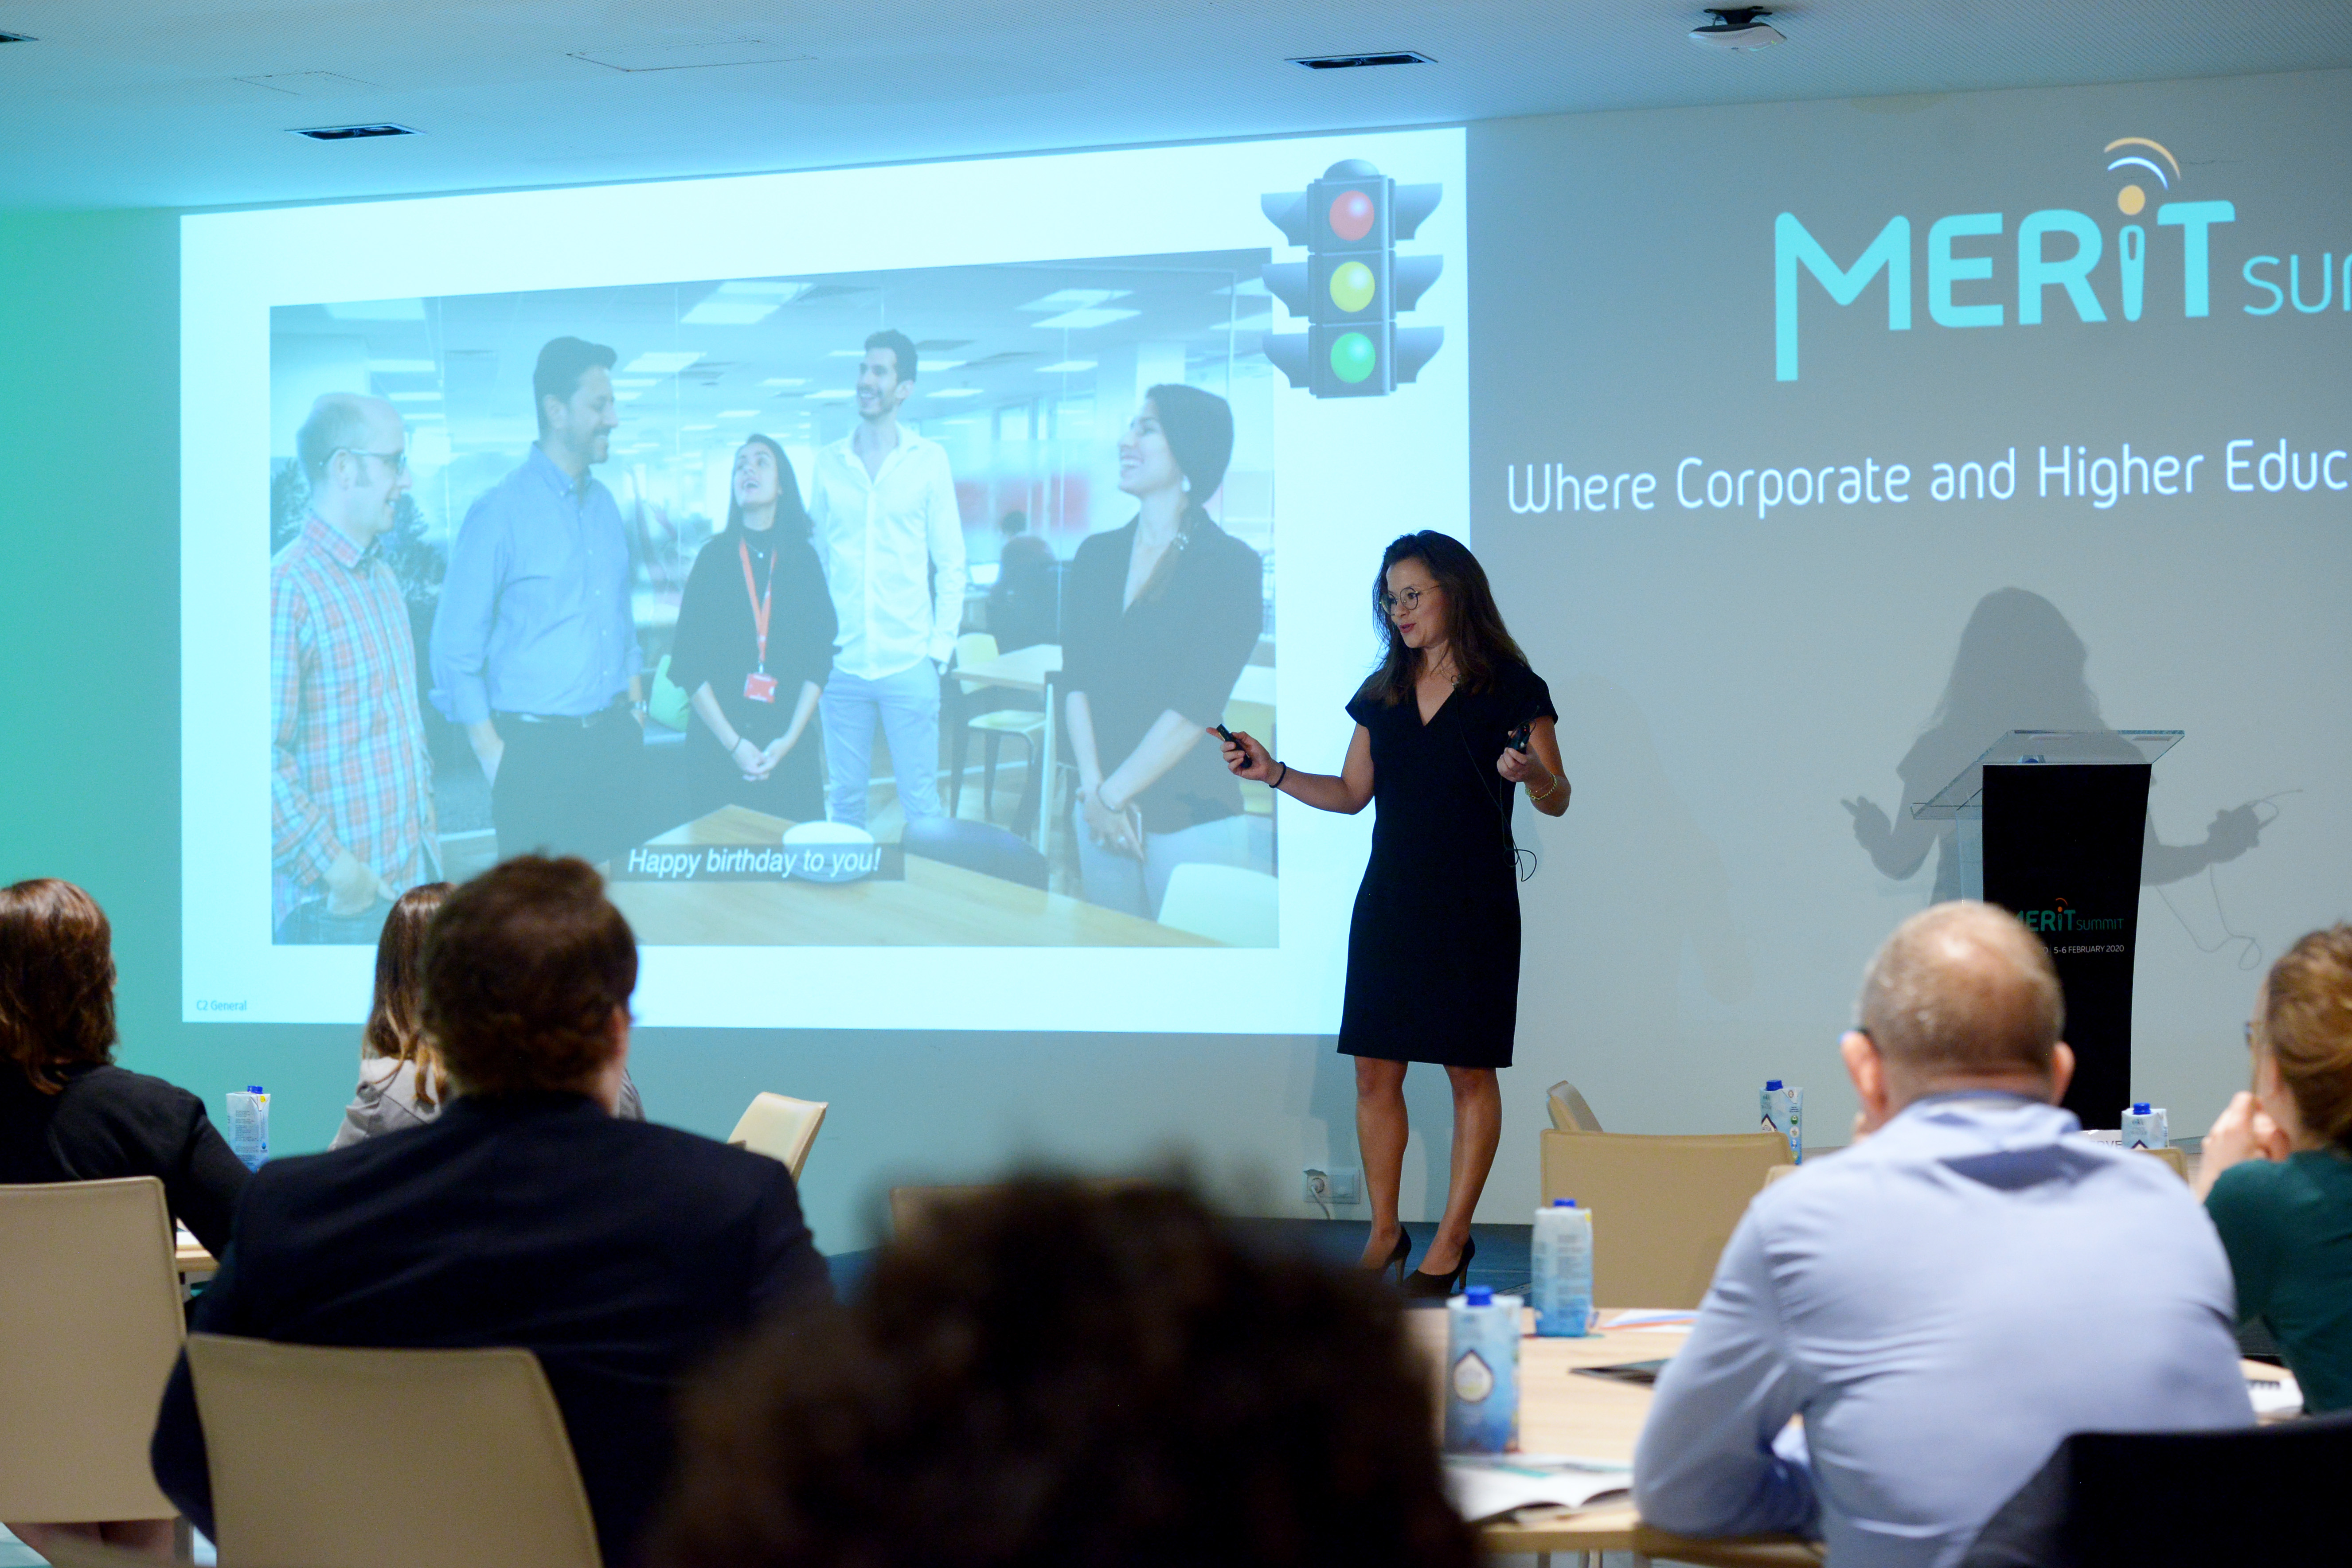 Felizitas Lichtenberg, Global D&I Lead, Vodafone, presents a case study on creating a culture of inclusion.